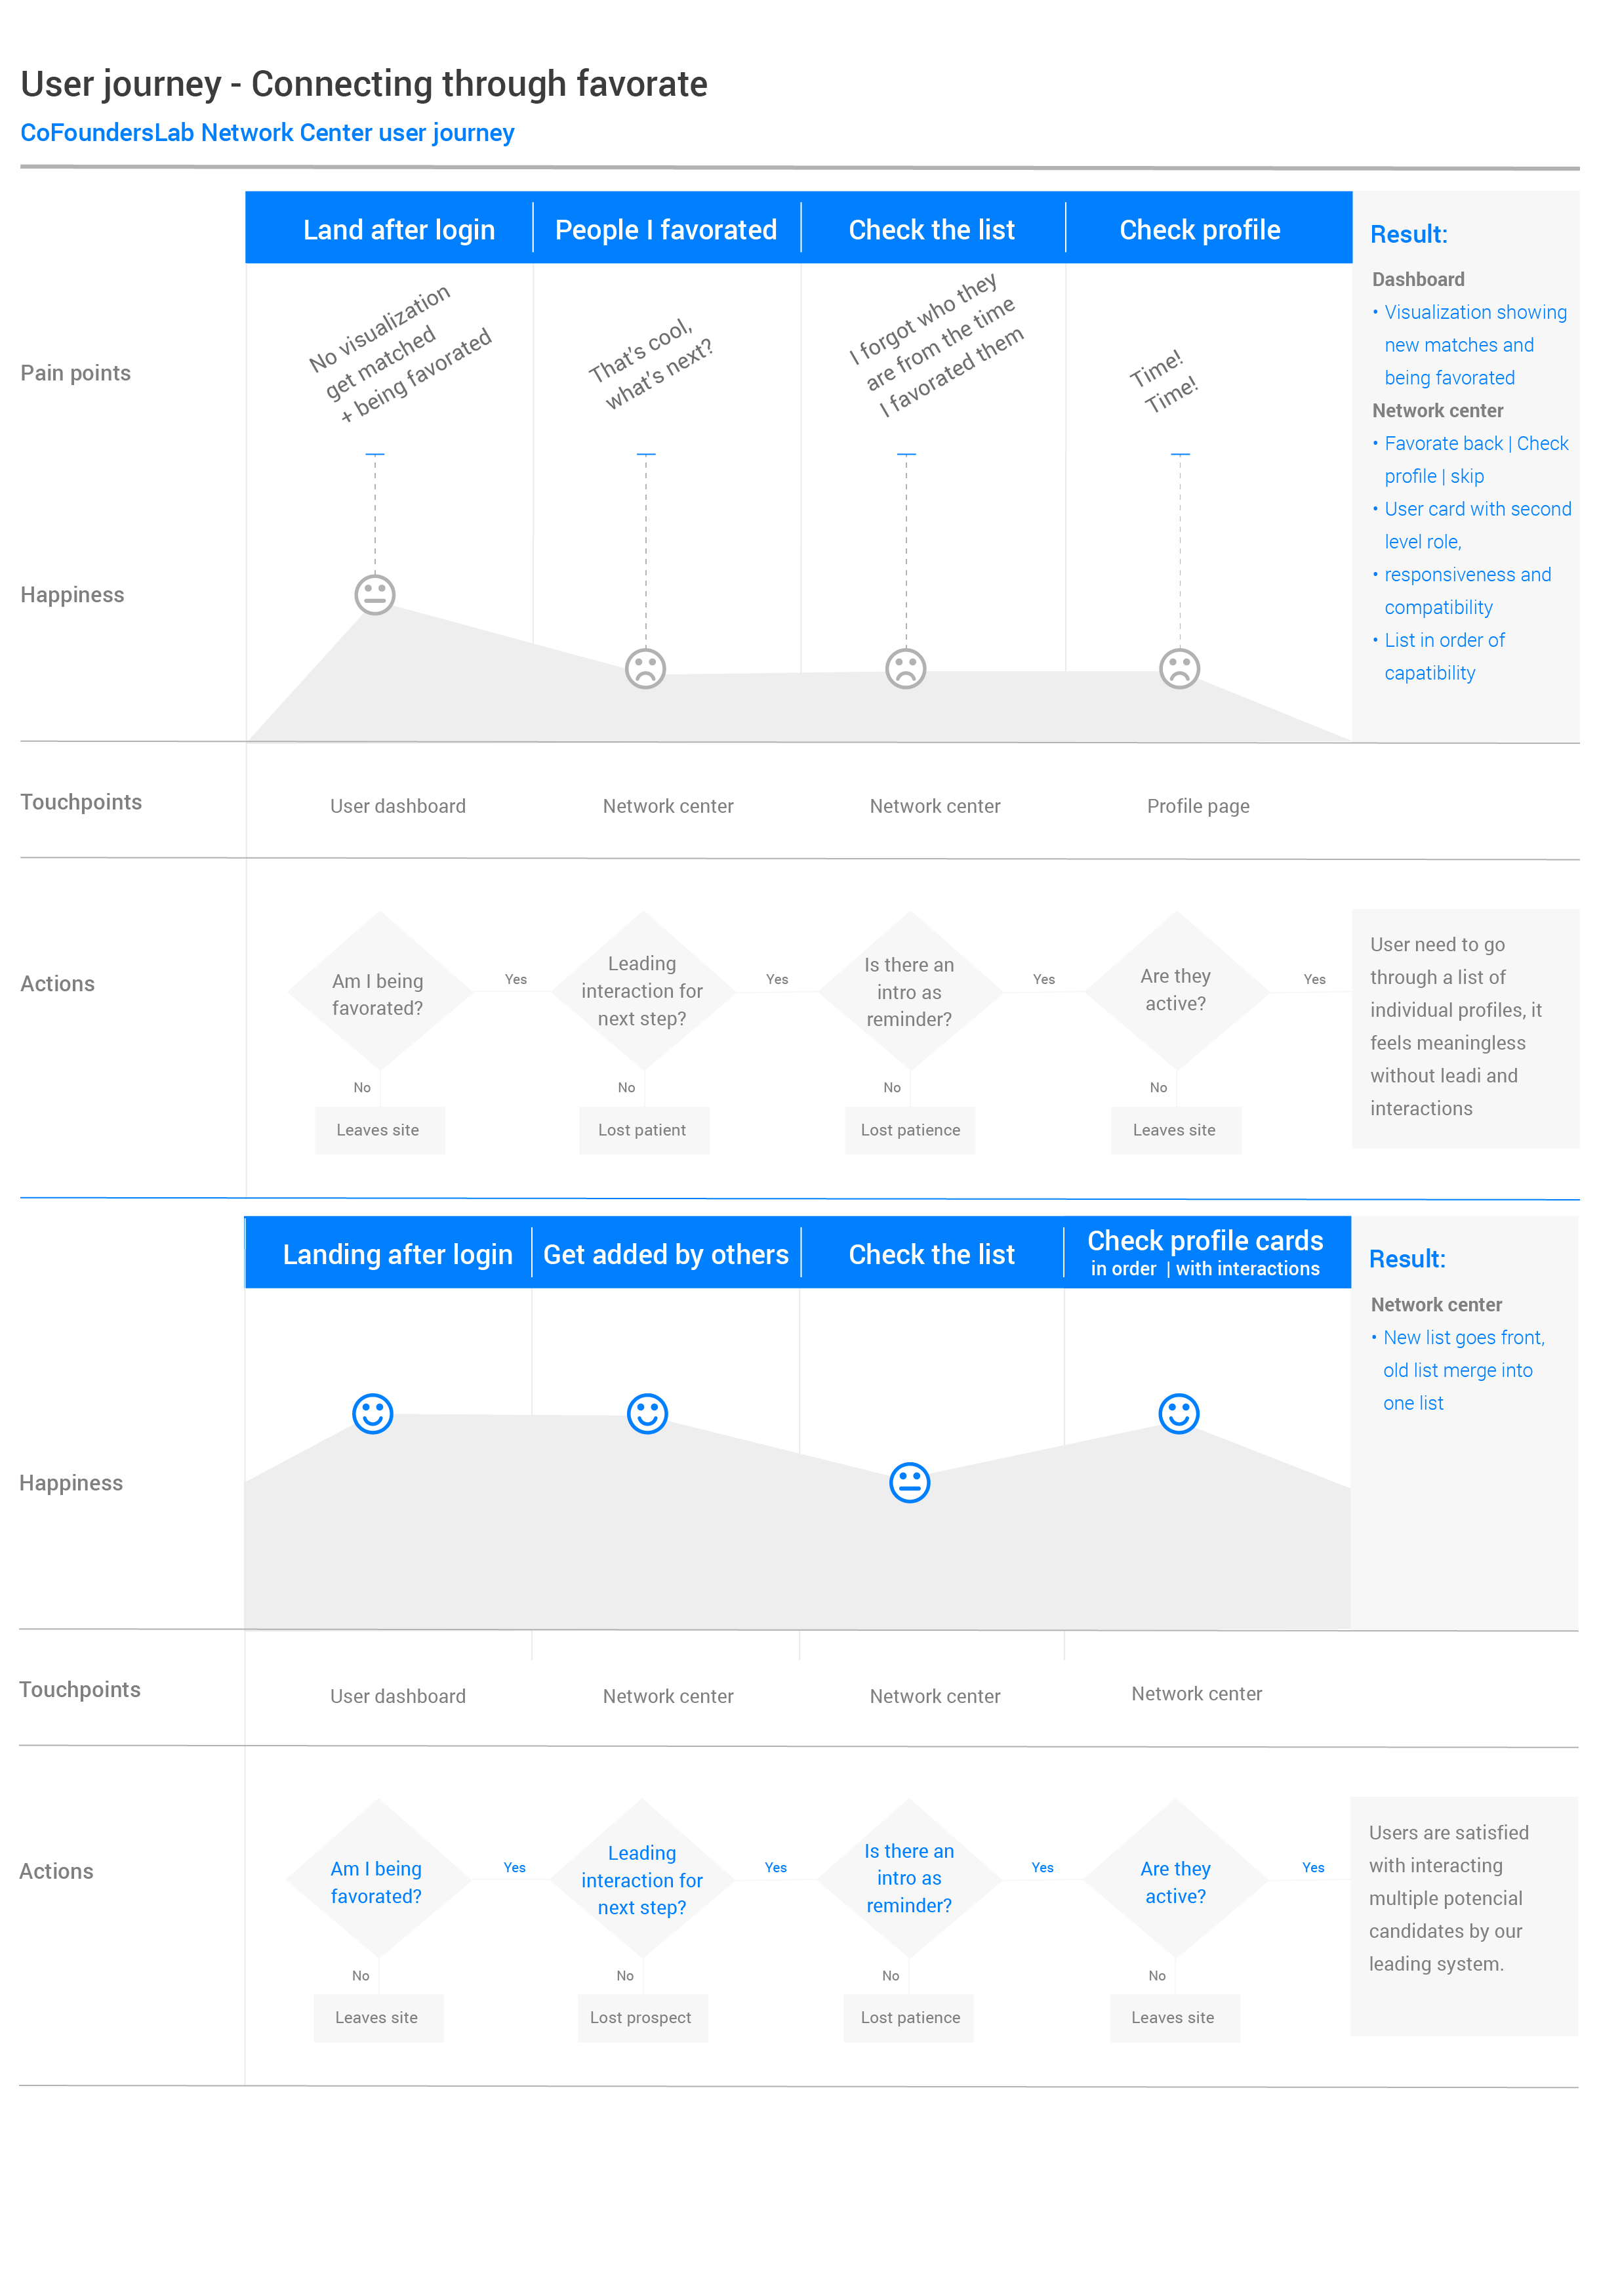 User journey-favorate.png